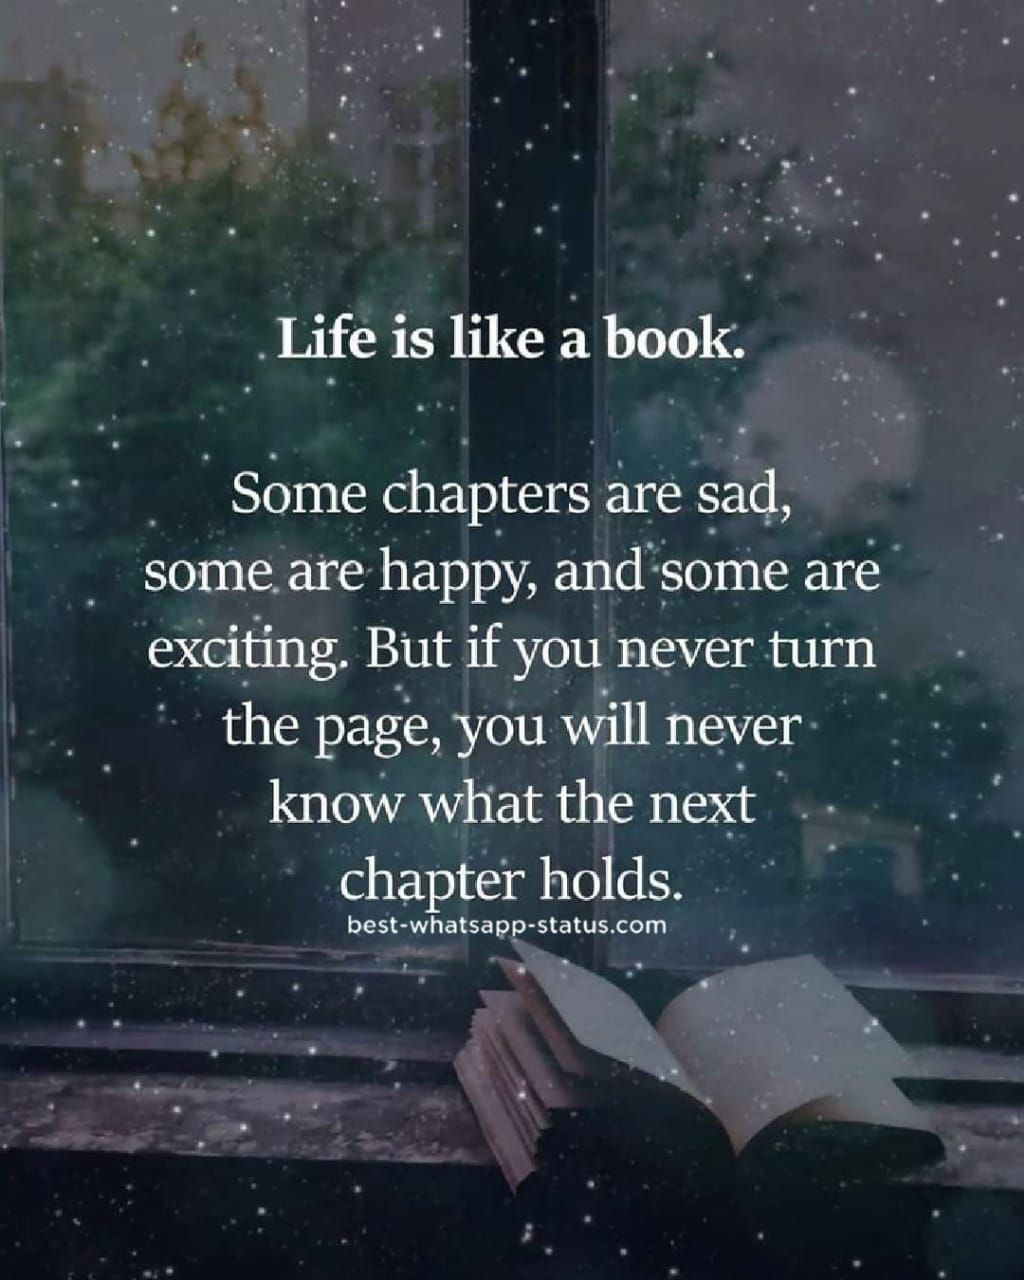 100 Meaningful Whatsapp Status Best Meaning Full Quotes Bws Quotes About Moving On Meaning Full Quotes Inspirational Quotes From Books